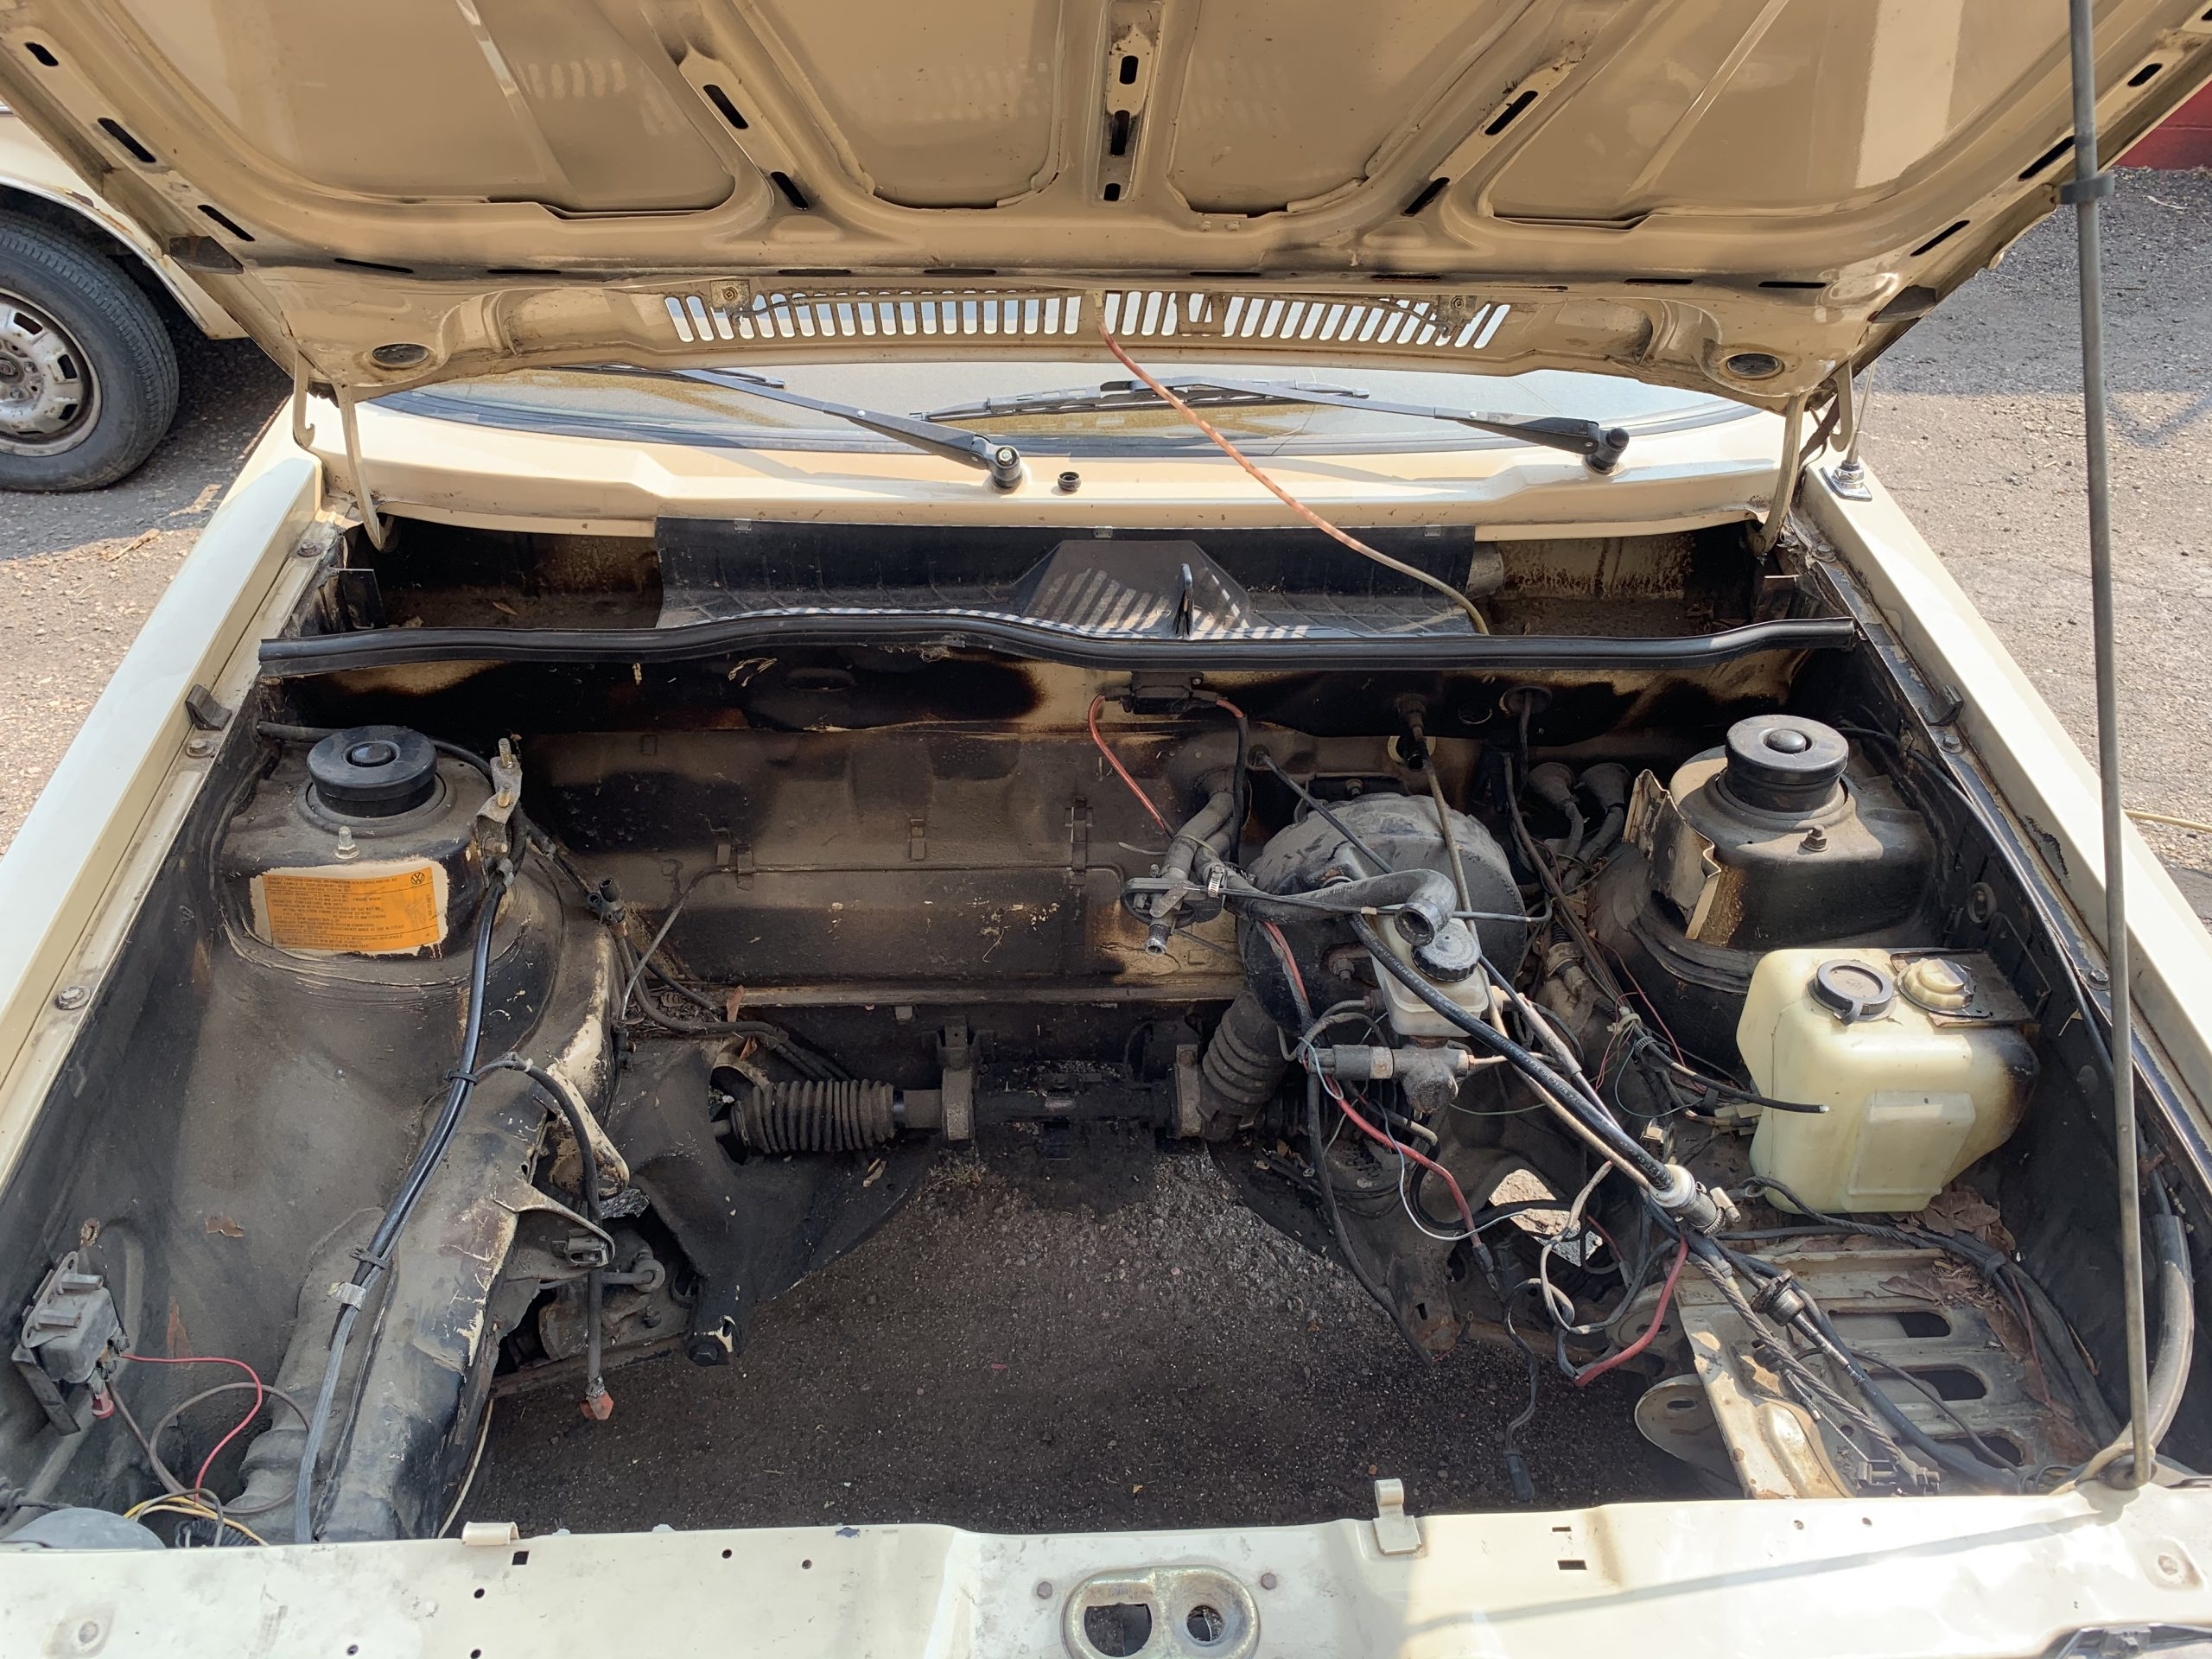 1980 VW Rabbit TDI empty engine bay Aug 22, 3 10 45 PM